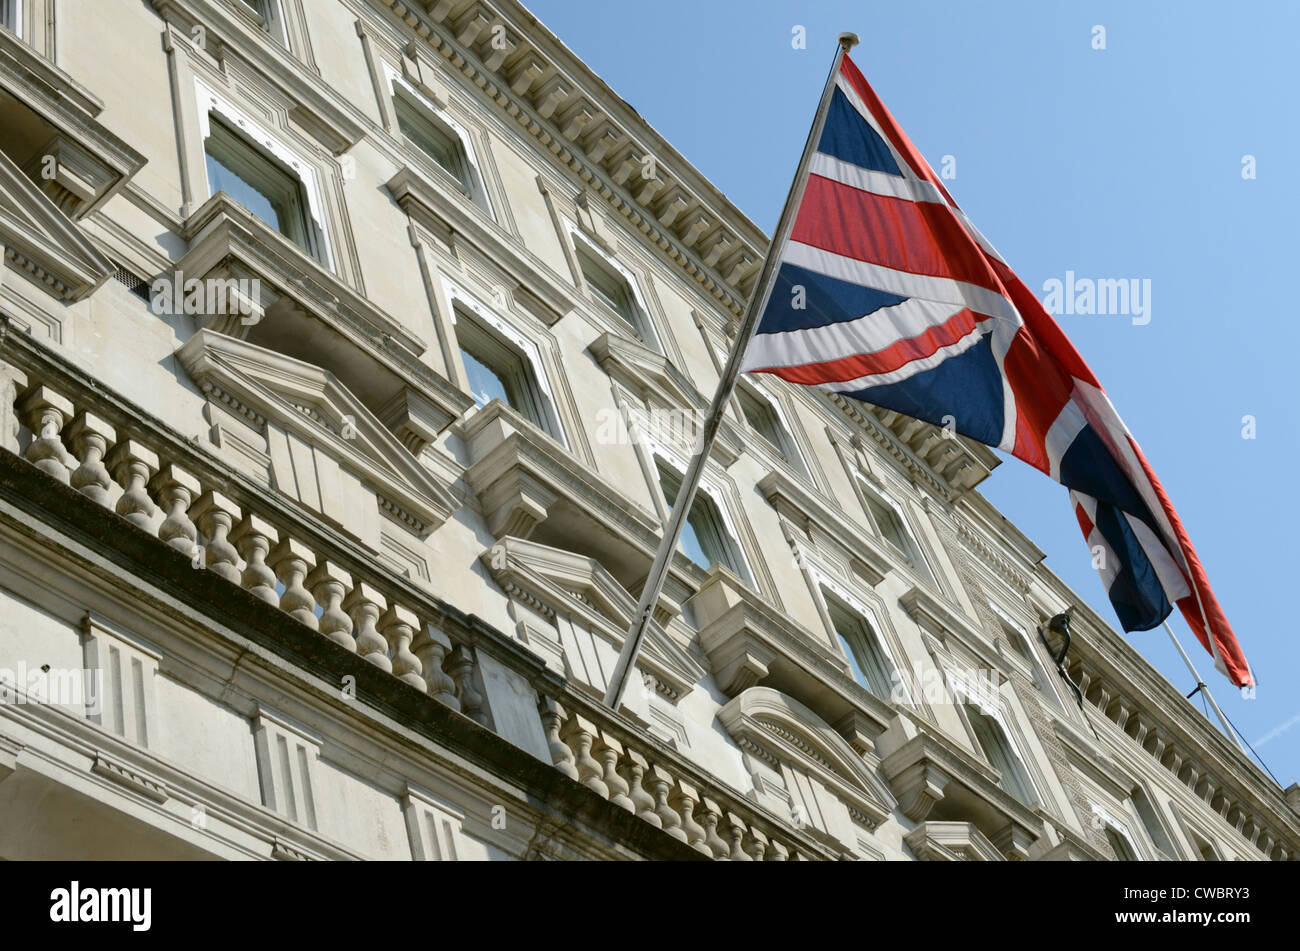 Cavalry and Guards Club at 127 Piccadilly, London, England - Stock Image